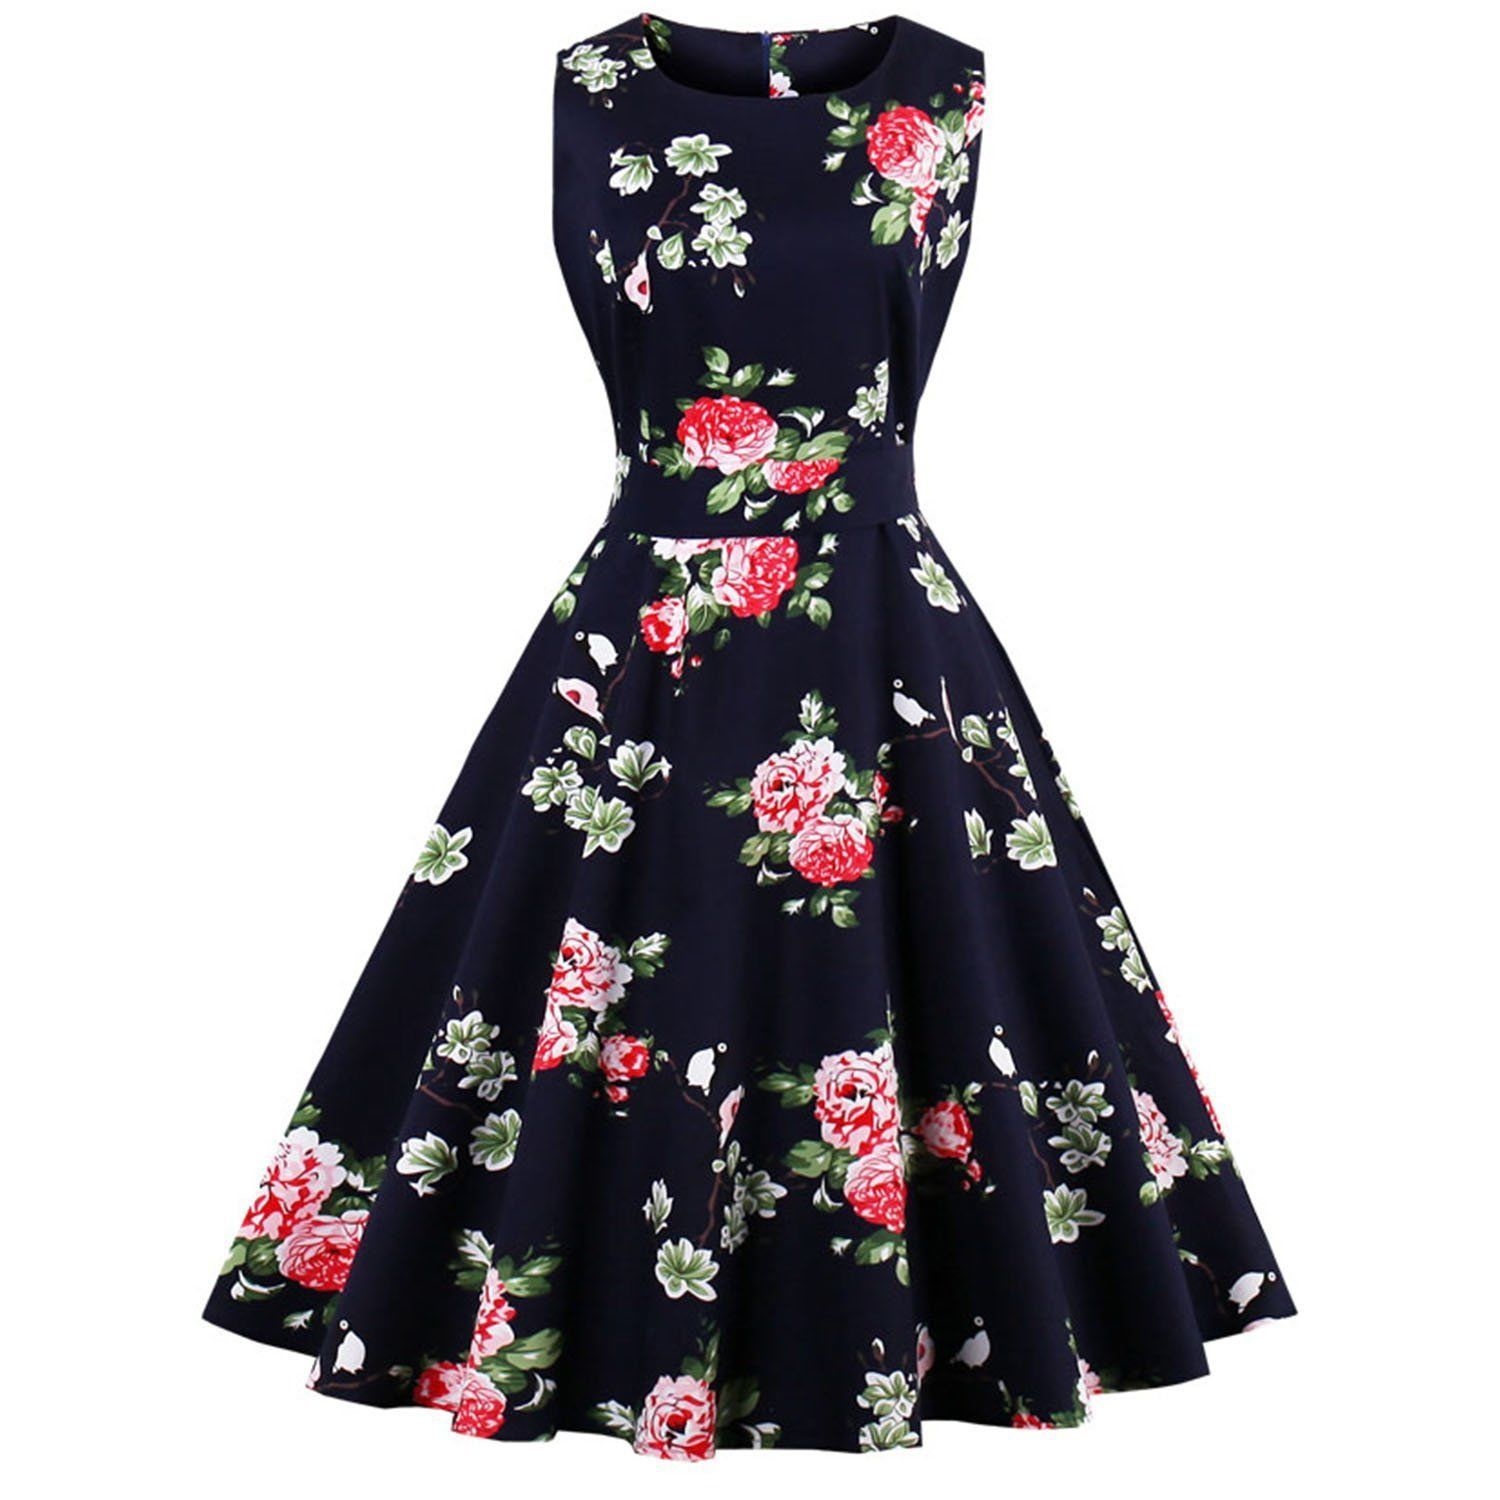 Tea length wedding dress patterns to sew  Awesome Amazing su Floral Vintage Women Dresses Rockabilly Party